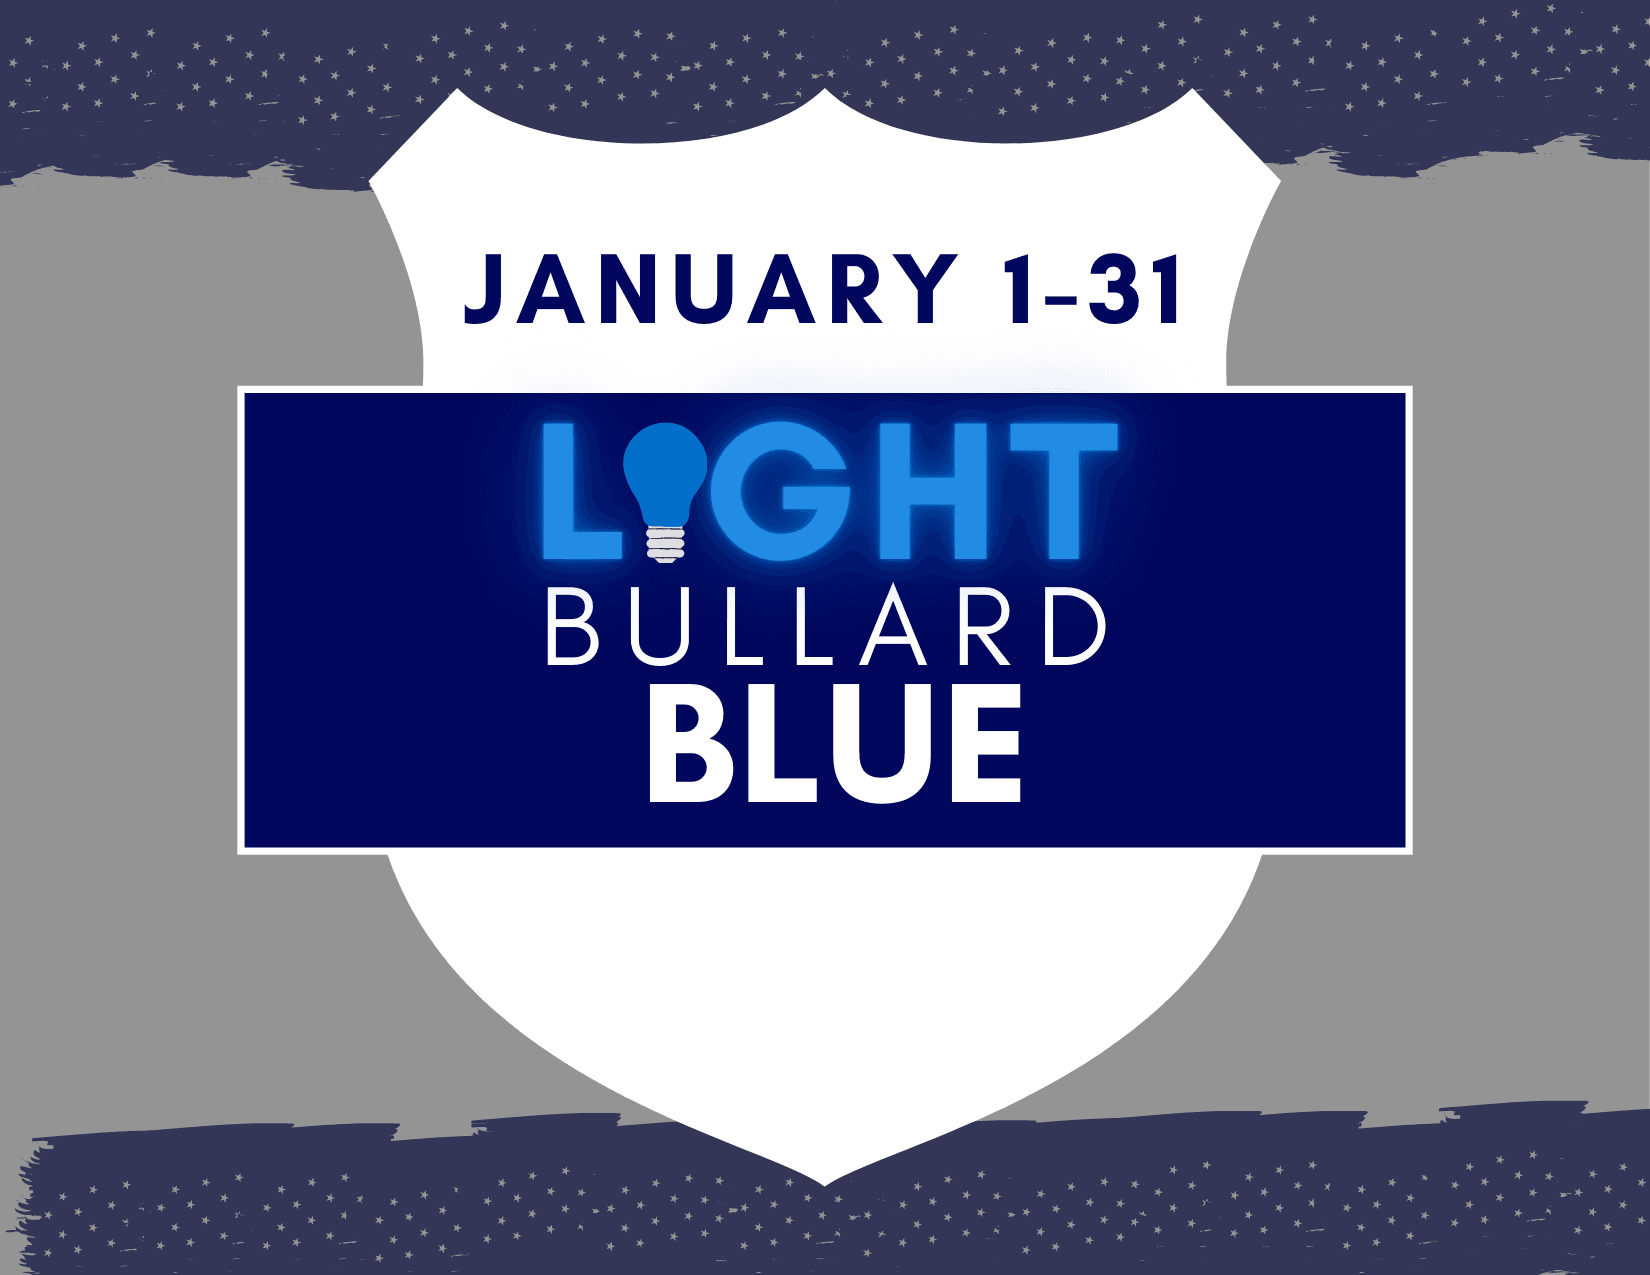 Light Bullard Blue